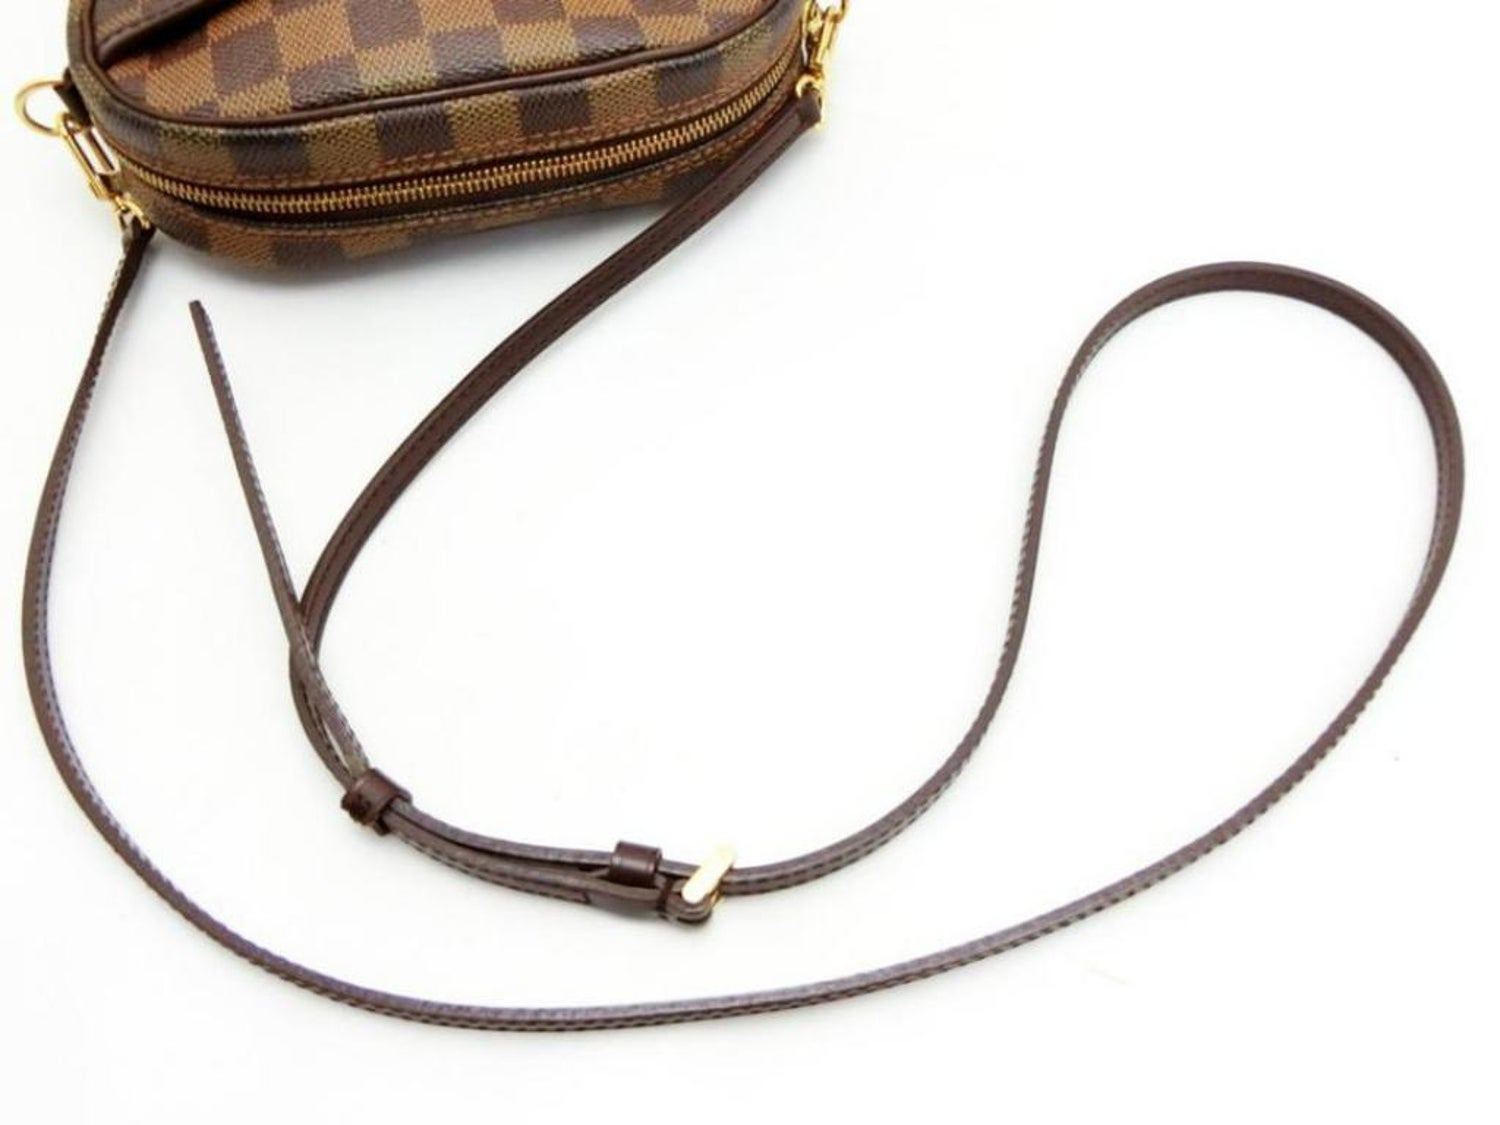 06445034d7d2 Louis Vuitton Ipanema Pochette Damier Ebene Fanny Pack 3way 231182 Brown  Coated For Sale at 1stdibs